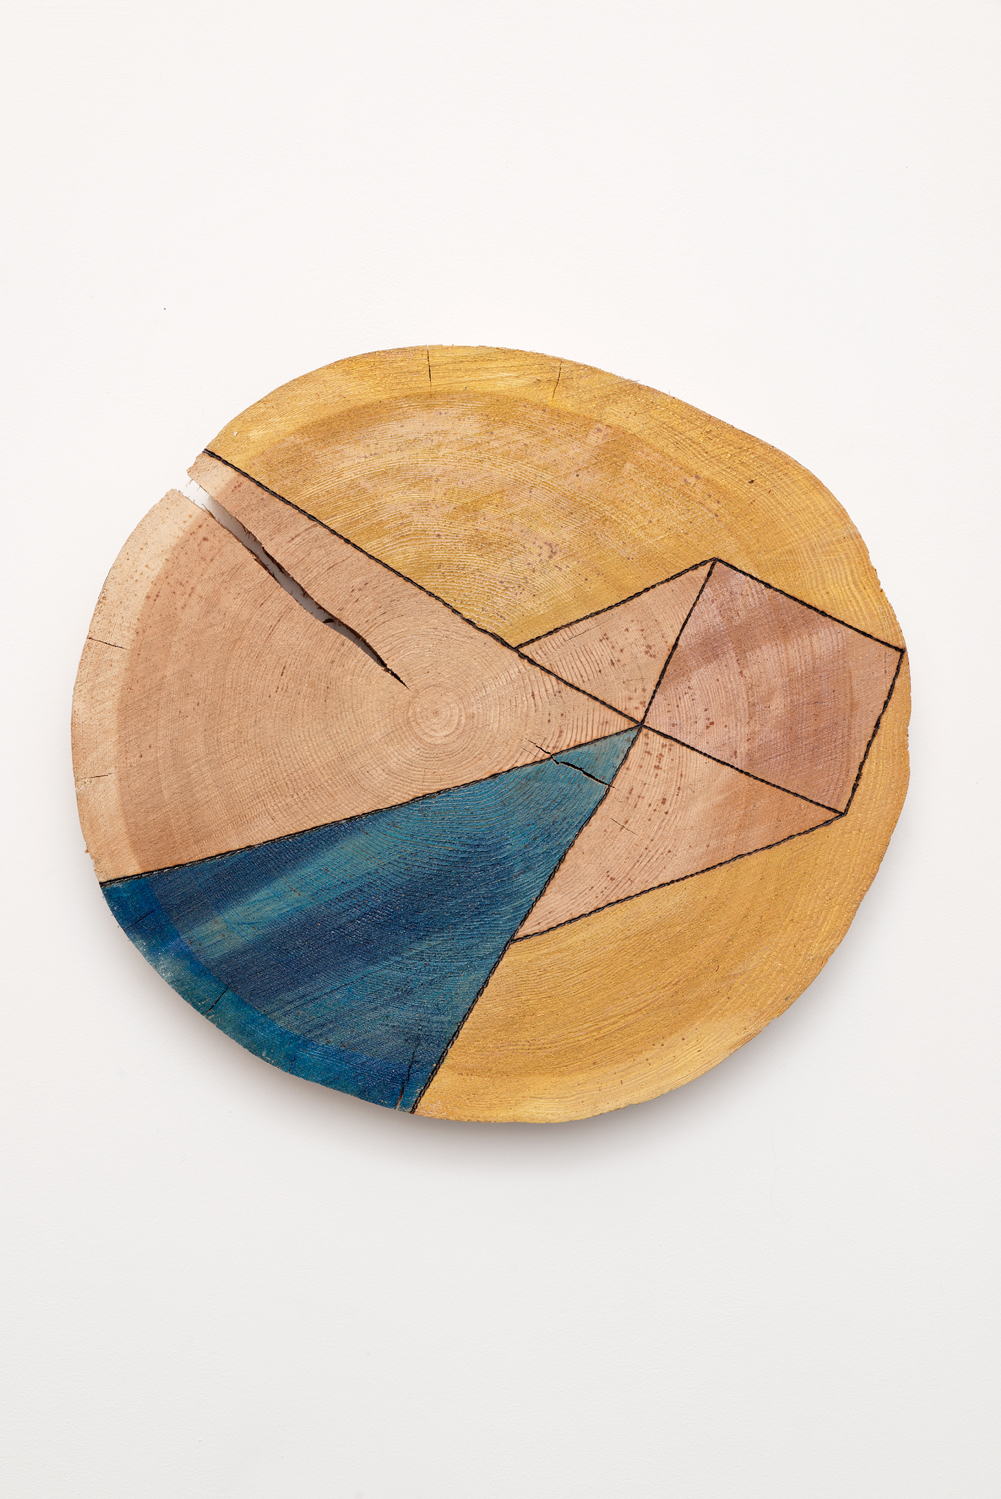 , 2013, Pyrography and dye on wood, ø 37 x 5 cm, , unique artwork, Photo: Aurélien Mole, Private collection, Montebelluna, Italy